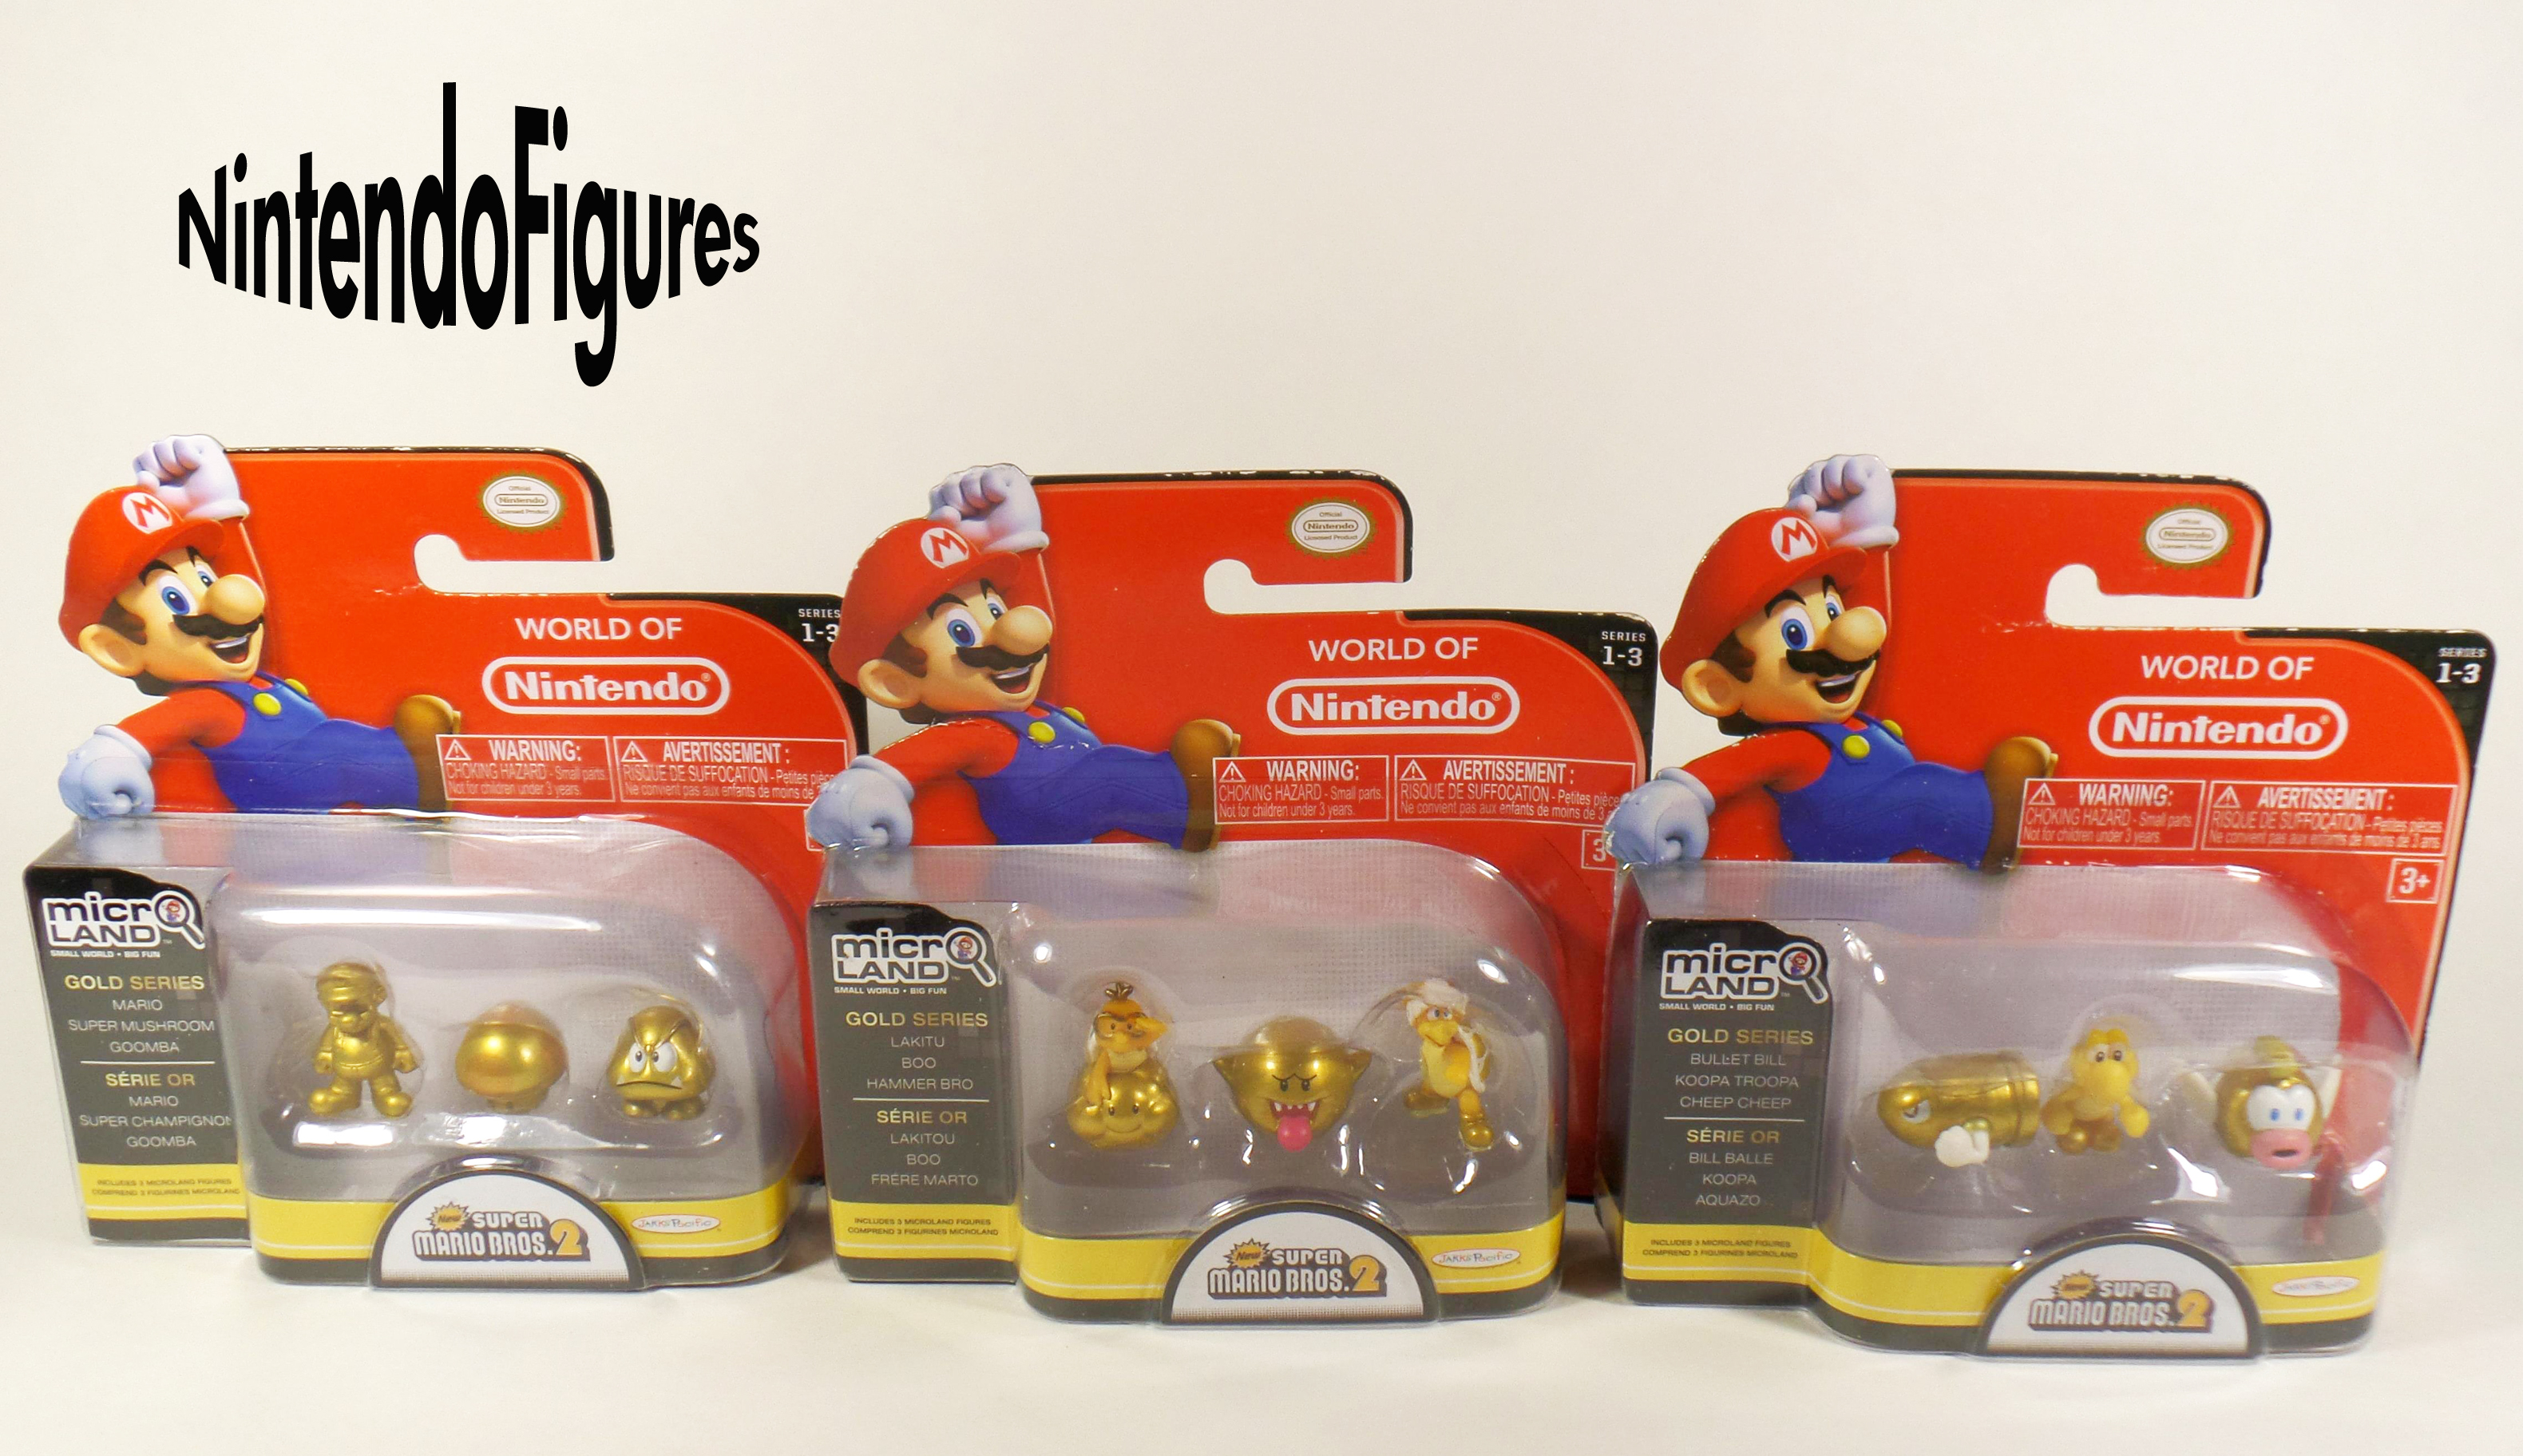 Micro Land New Super Mario Bros 2 1 3 Figure Packs Review